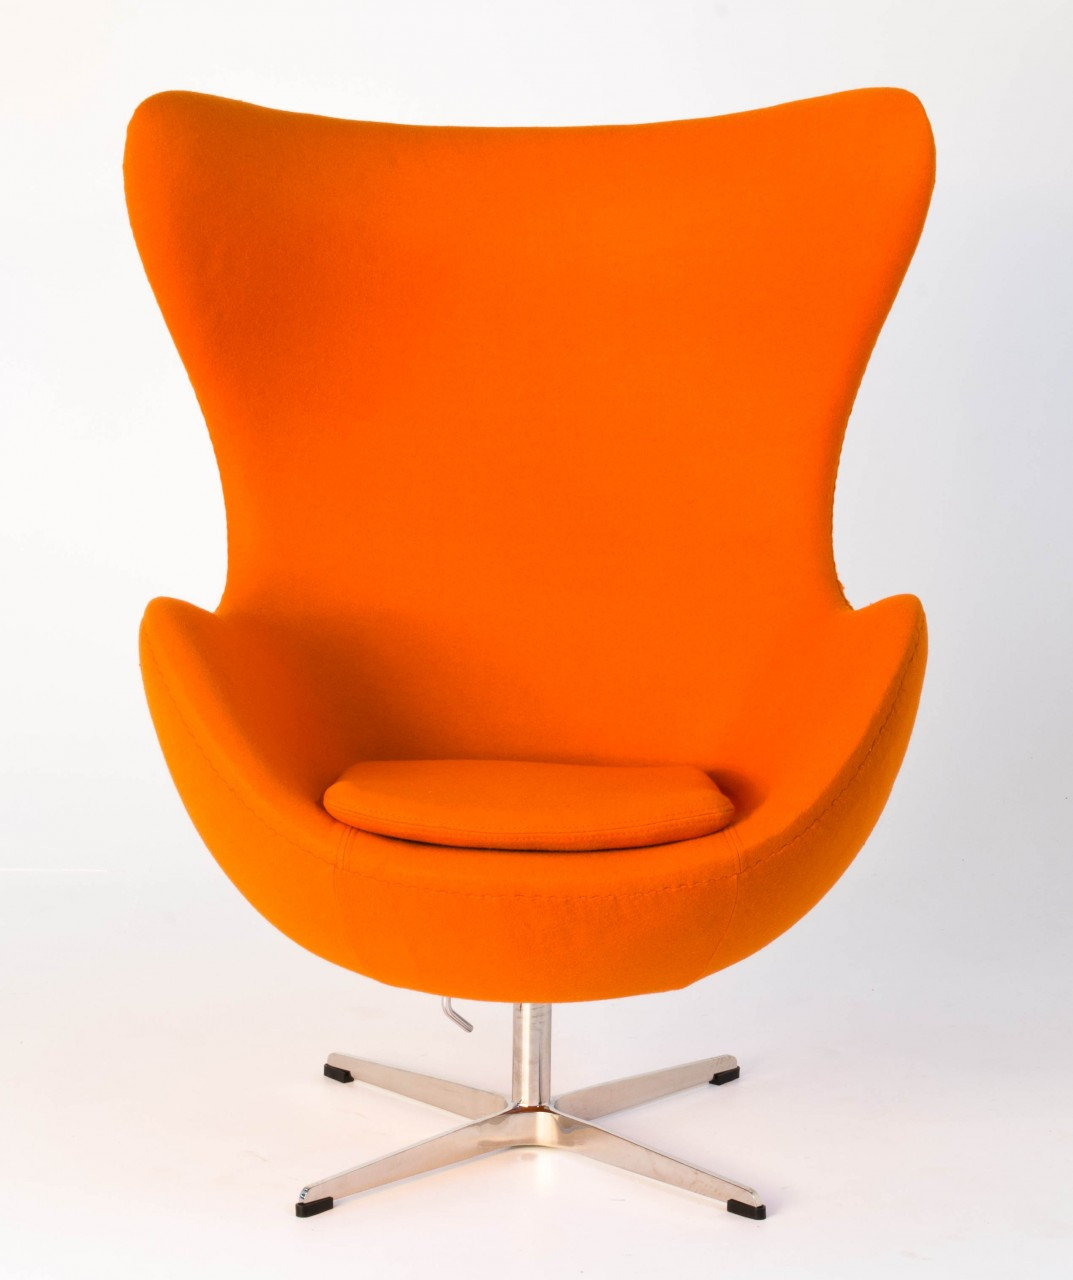 Replica egg chair orange replica arne jacobsen egg chair for Egg chair replica schweiz